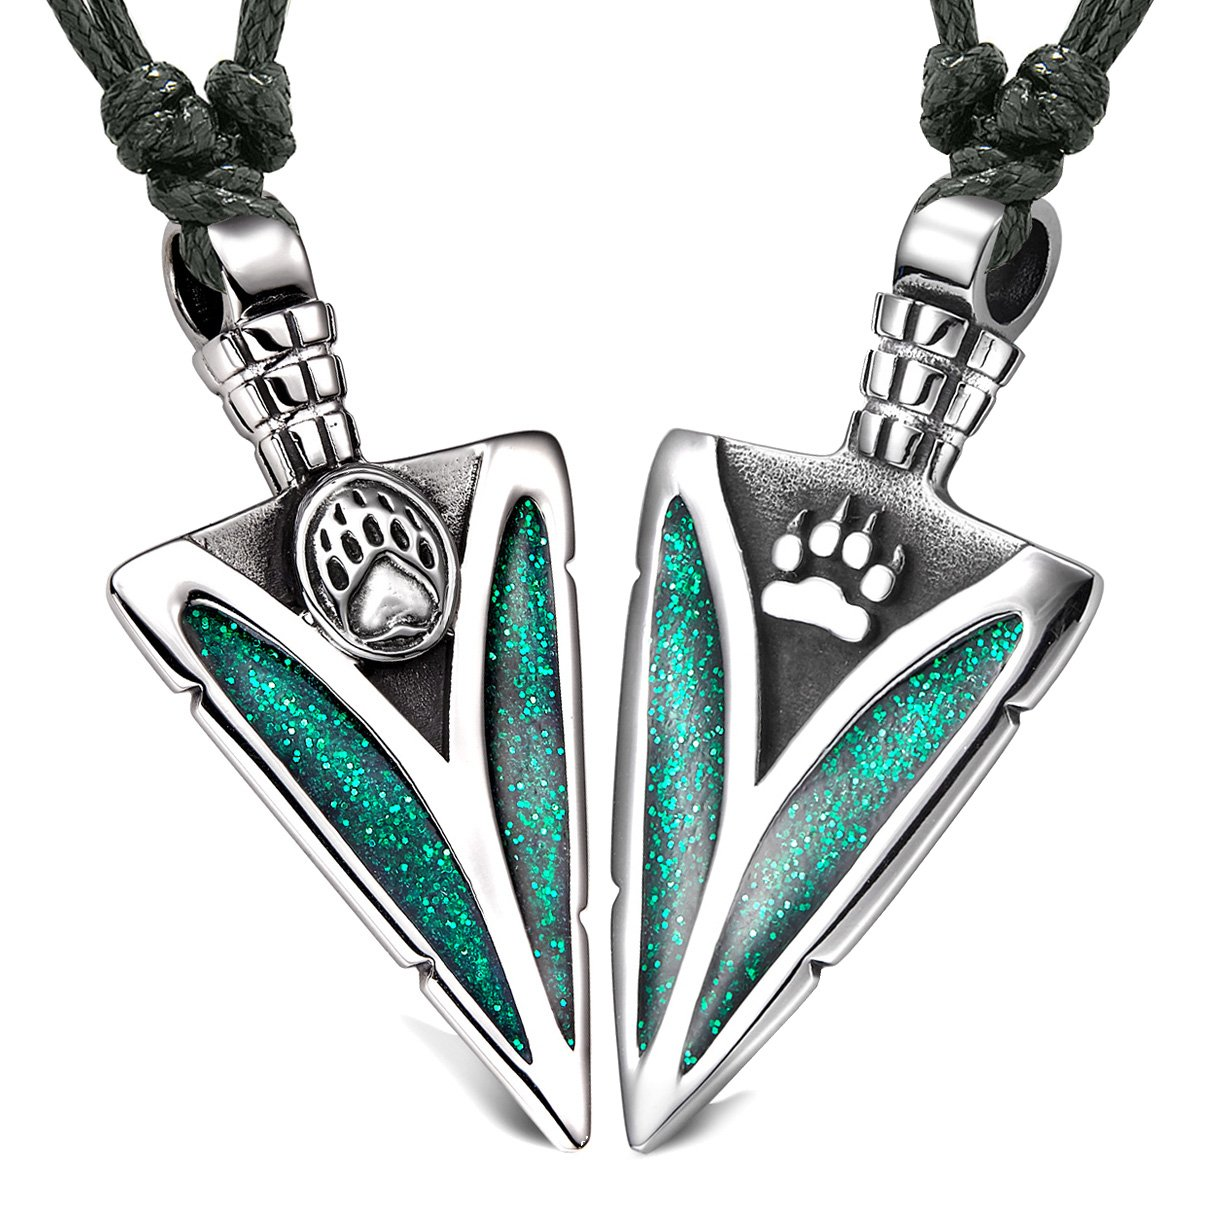 Arrowhead Wolf and Bear Paws Love Couples or BFF Set Amulets Sparkling Royal Green Adjustable Necklaces